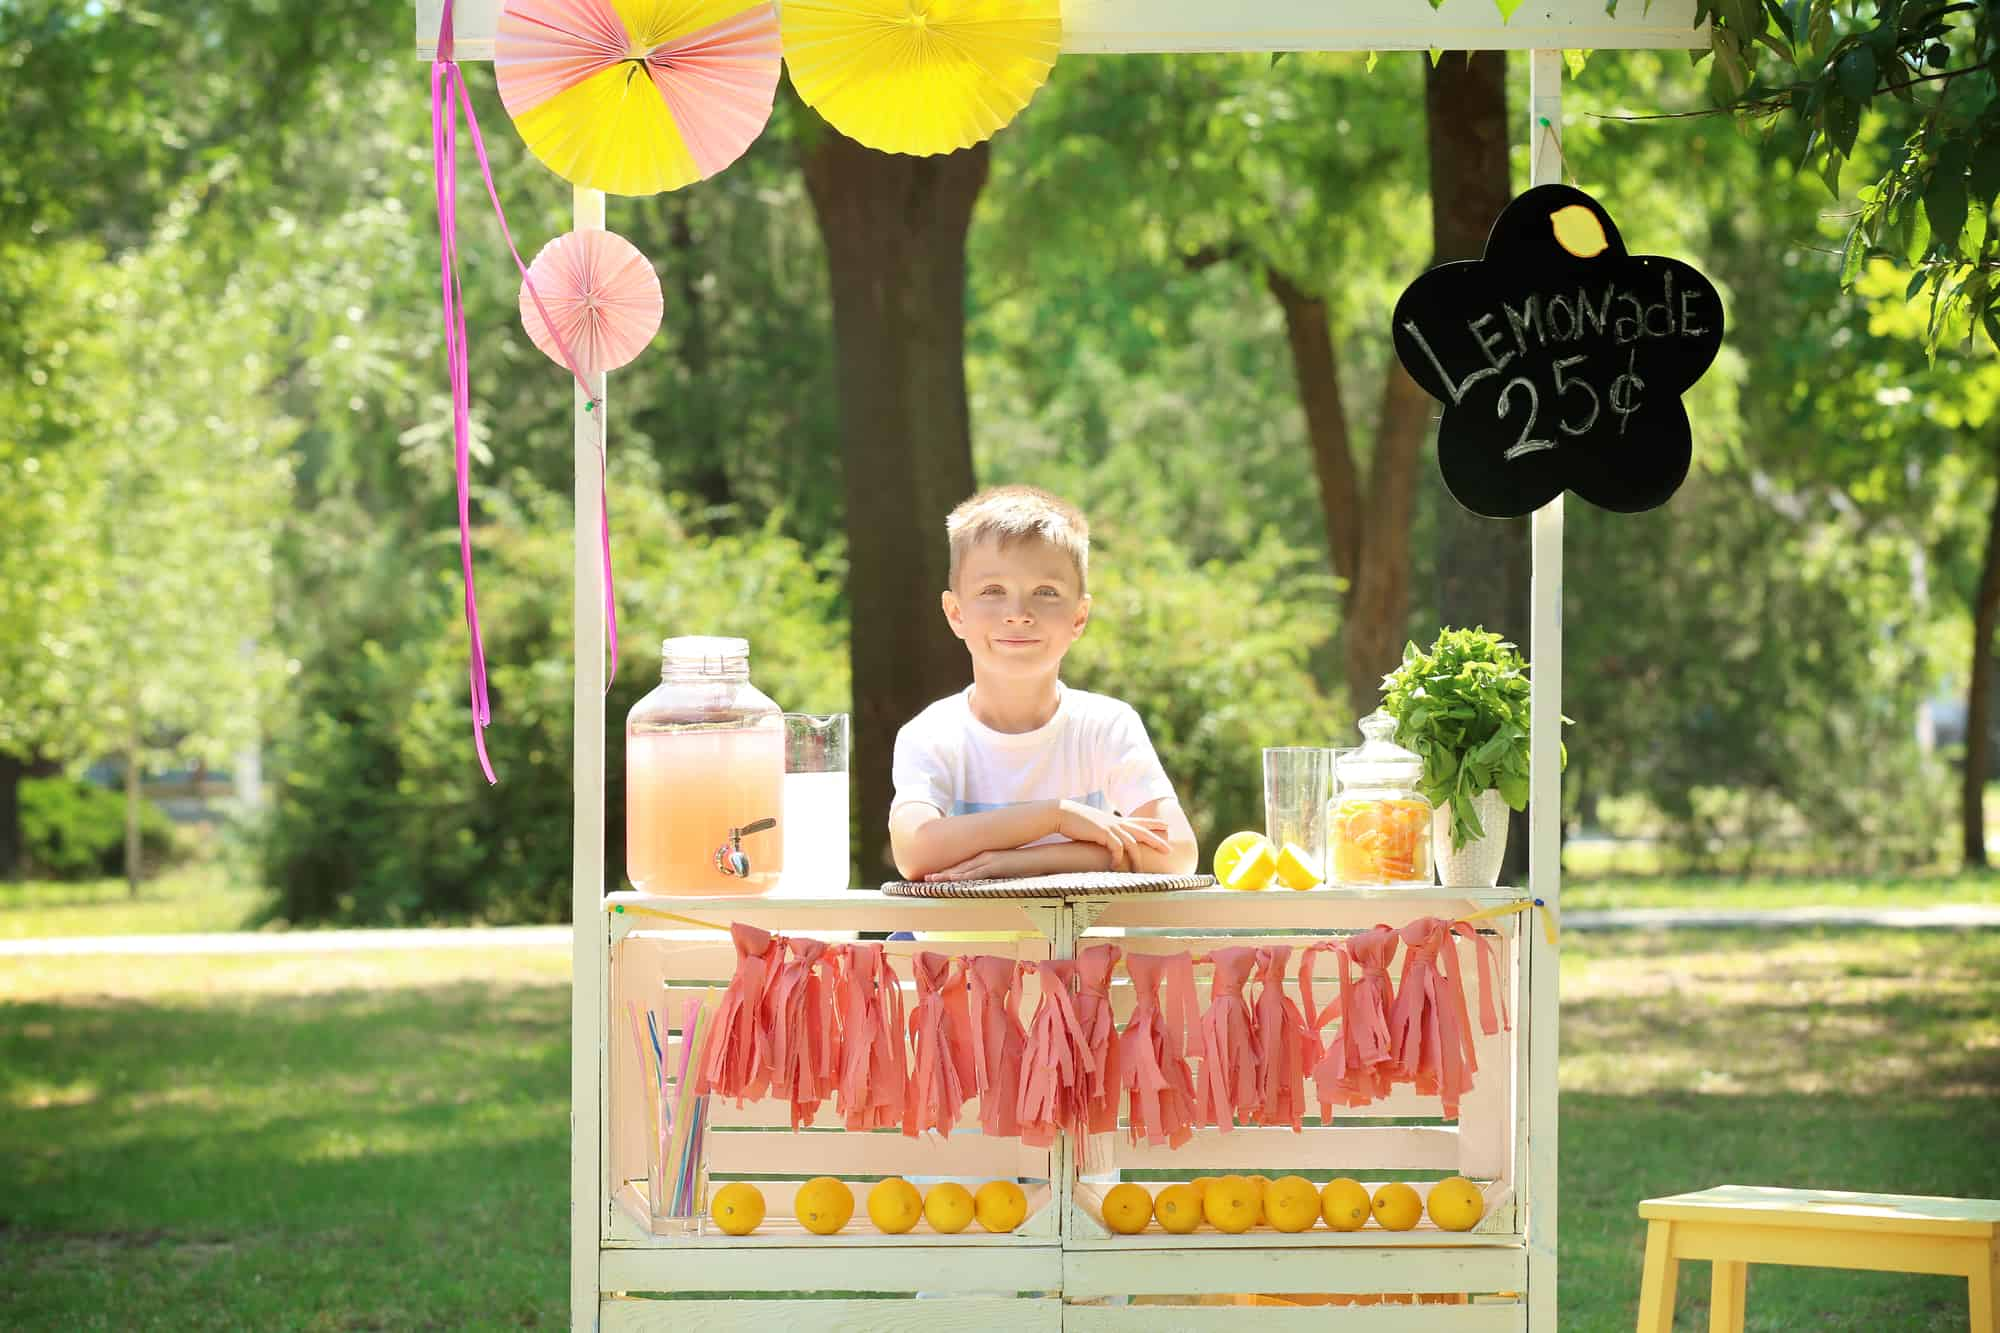 Little Boy Running a Lemonade Stand